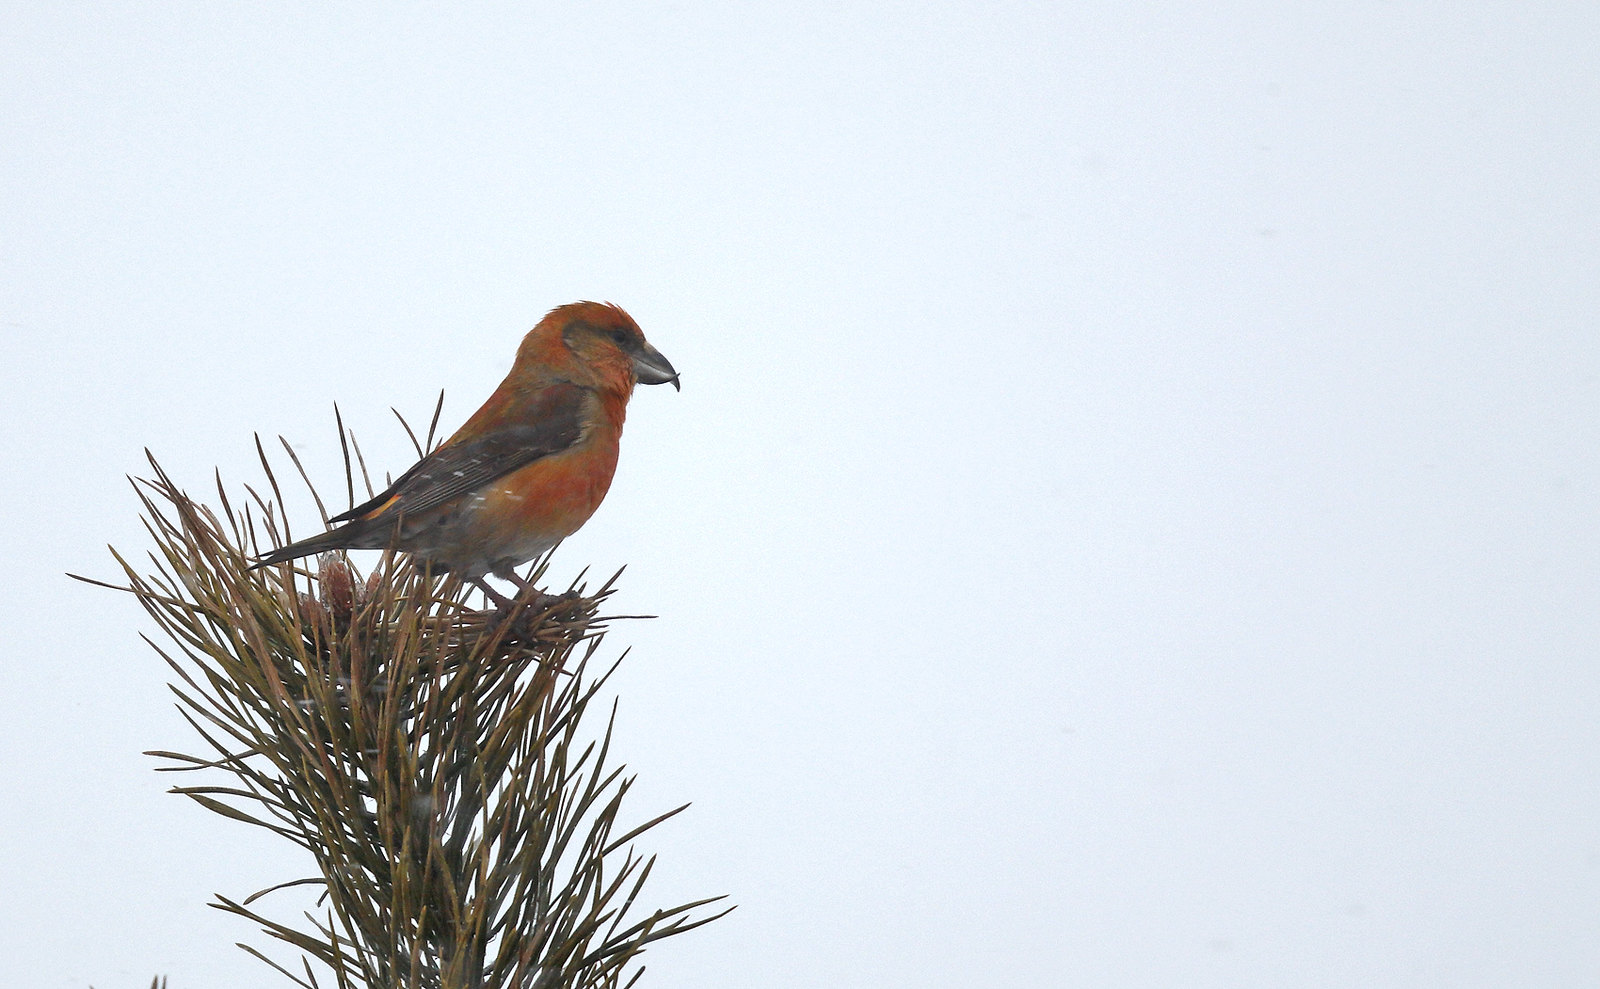 Common Crossbill - very challenging conditions!